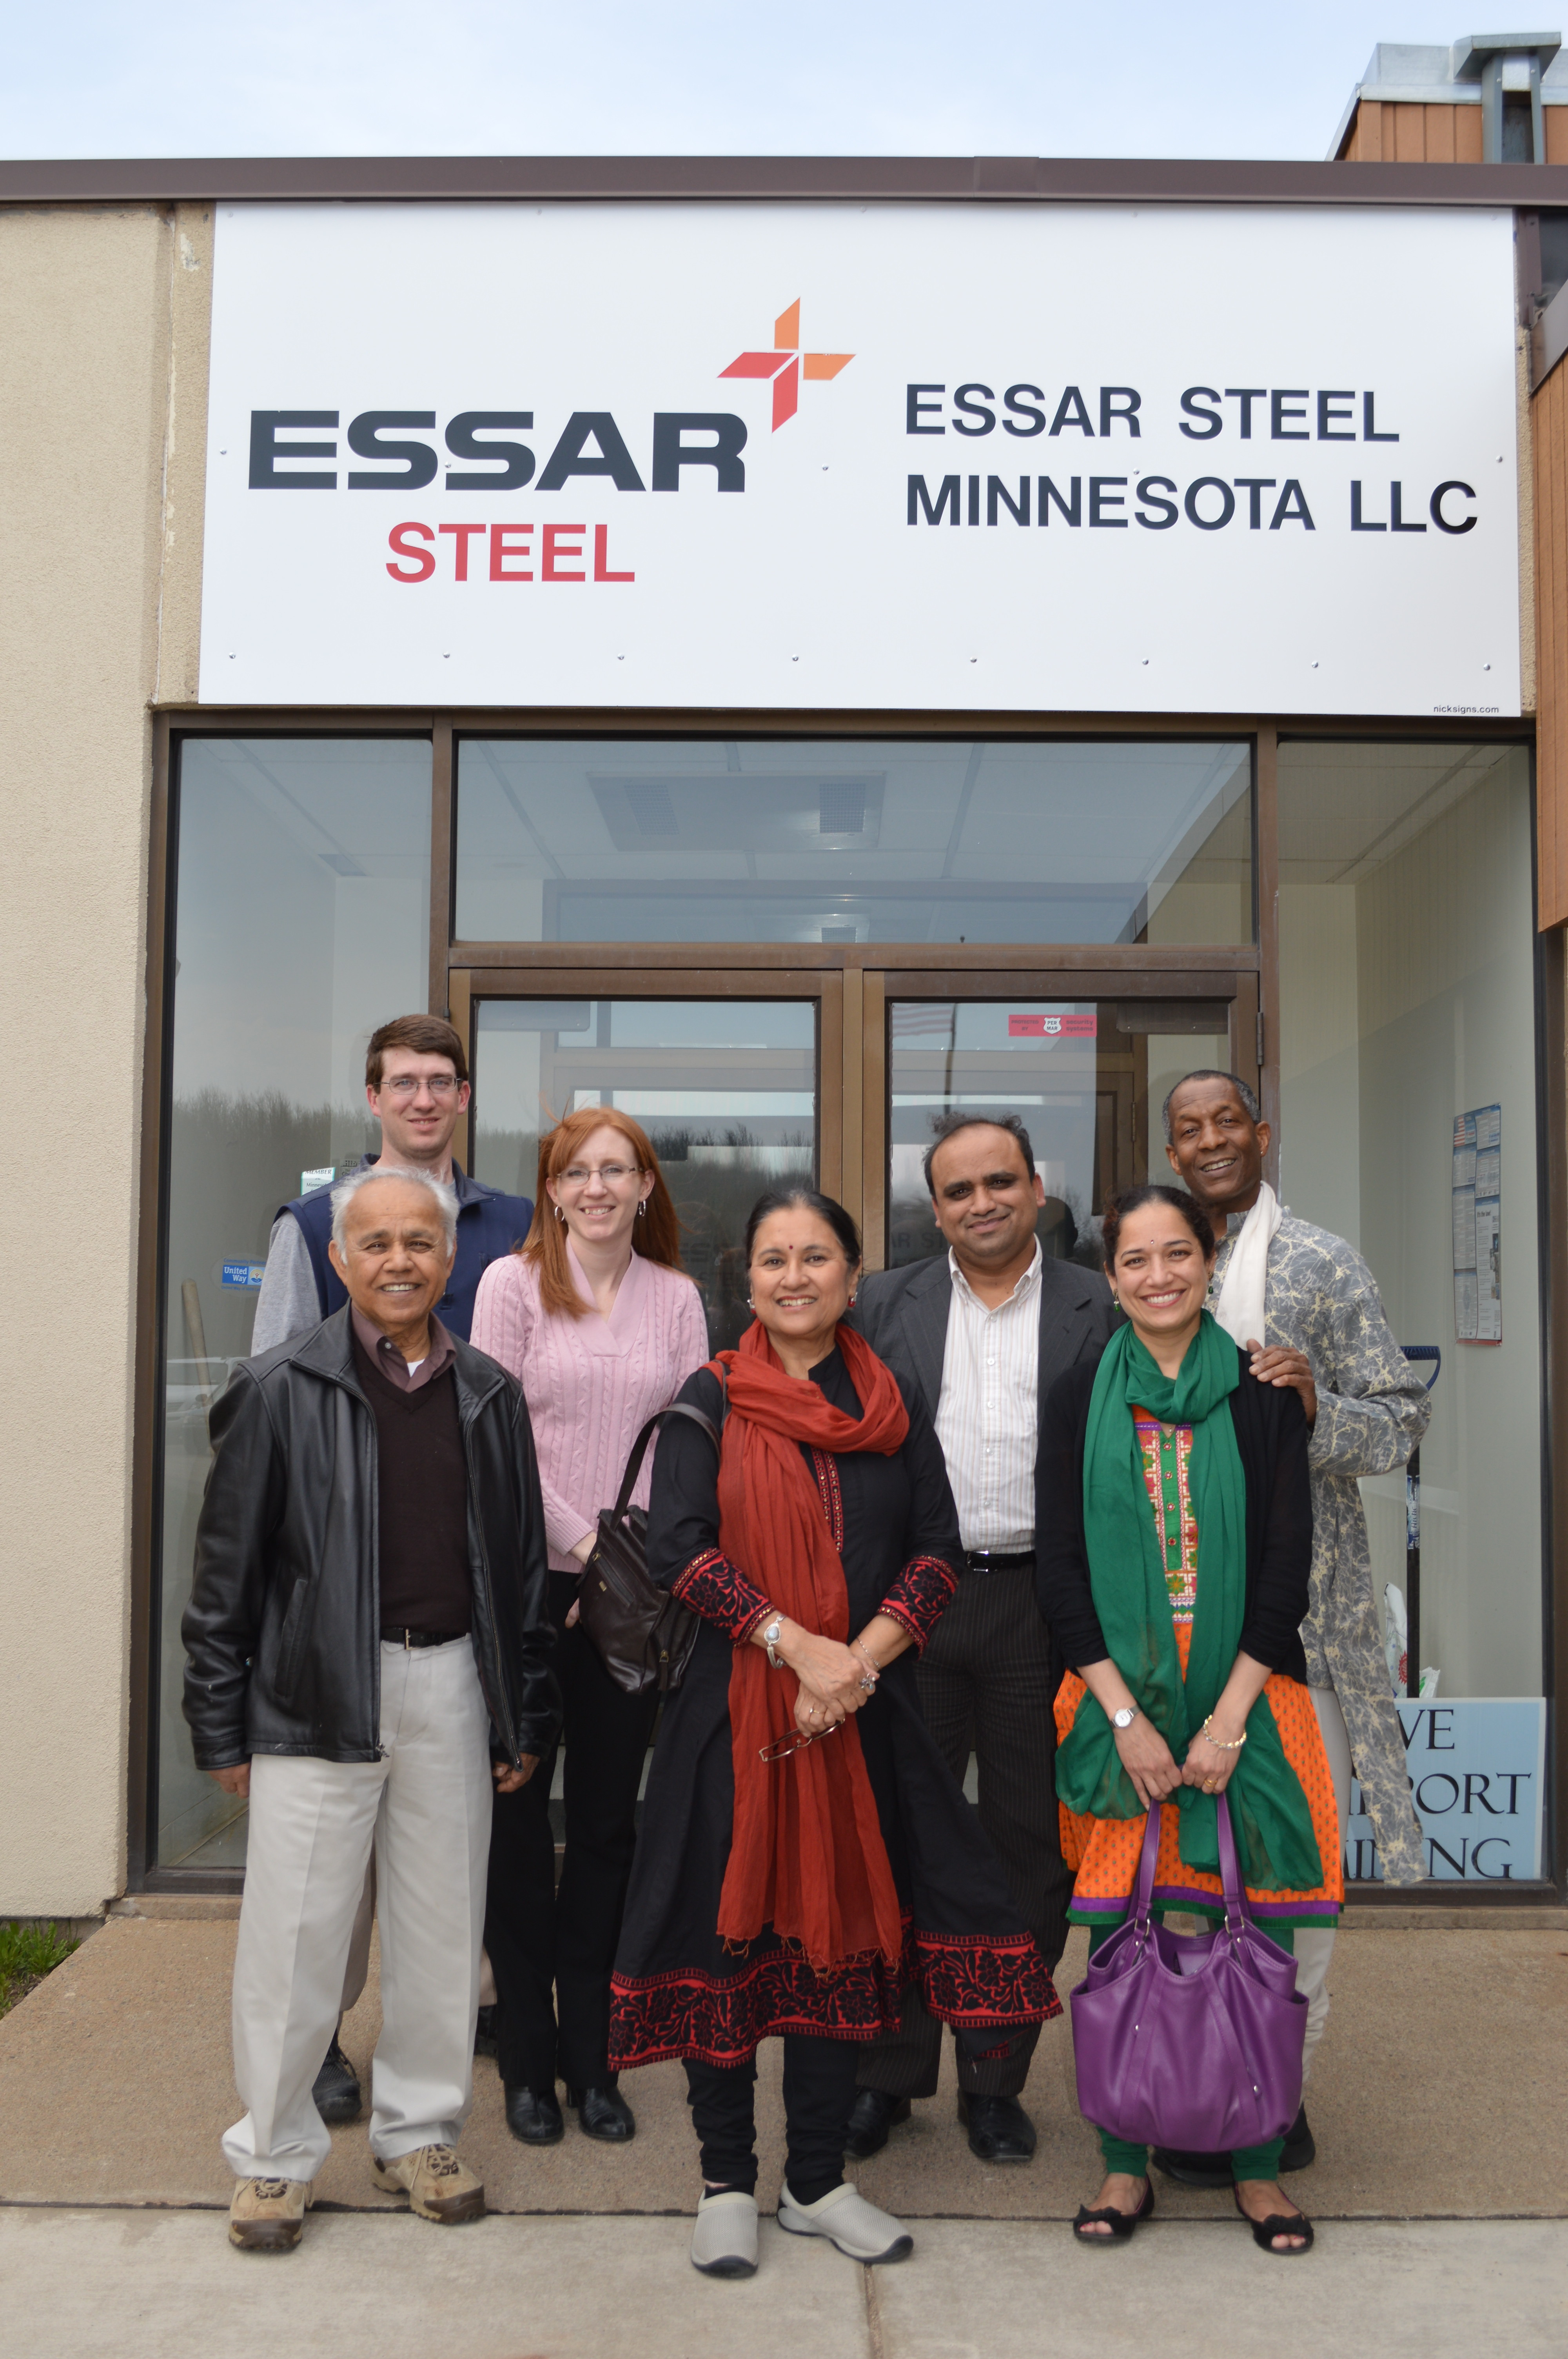 Group photo at Essar Steel